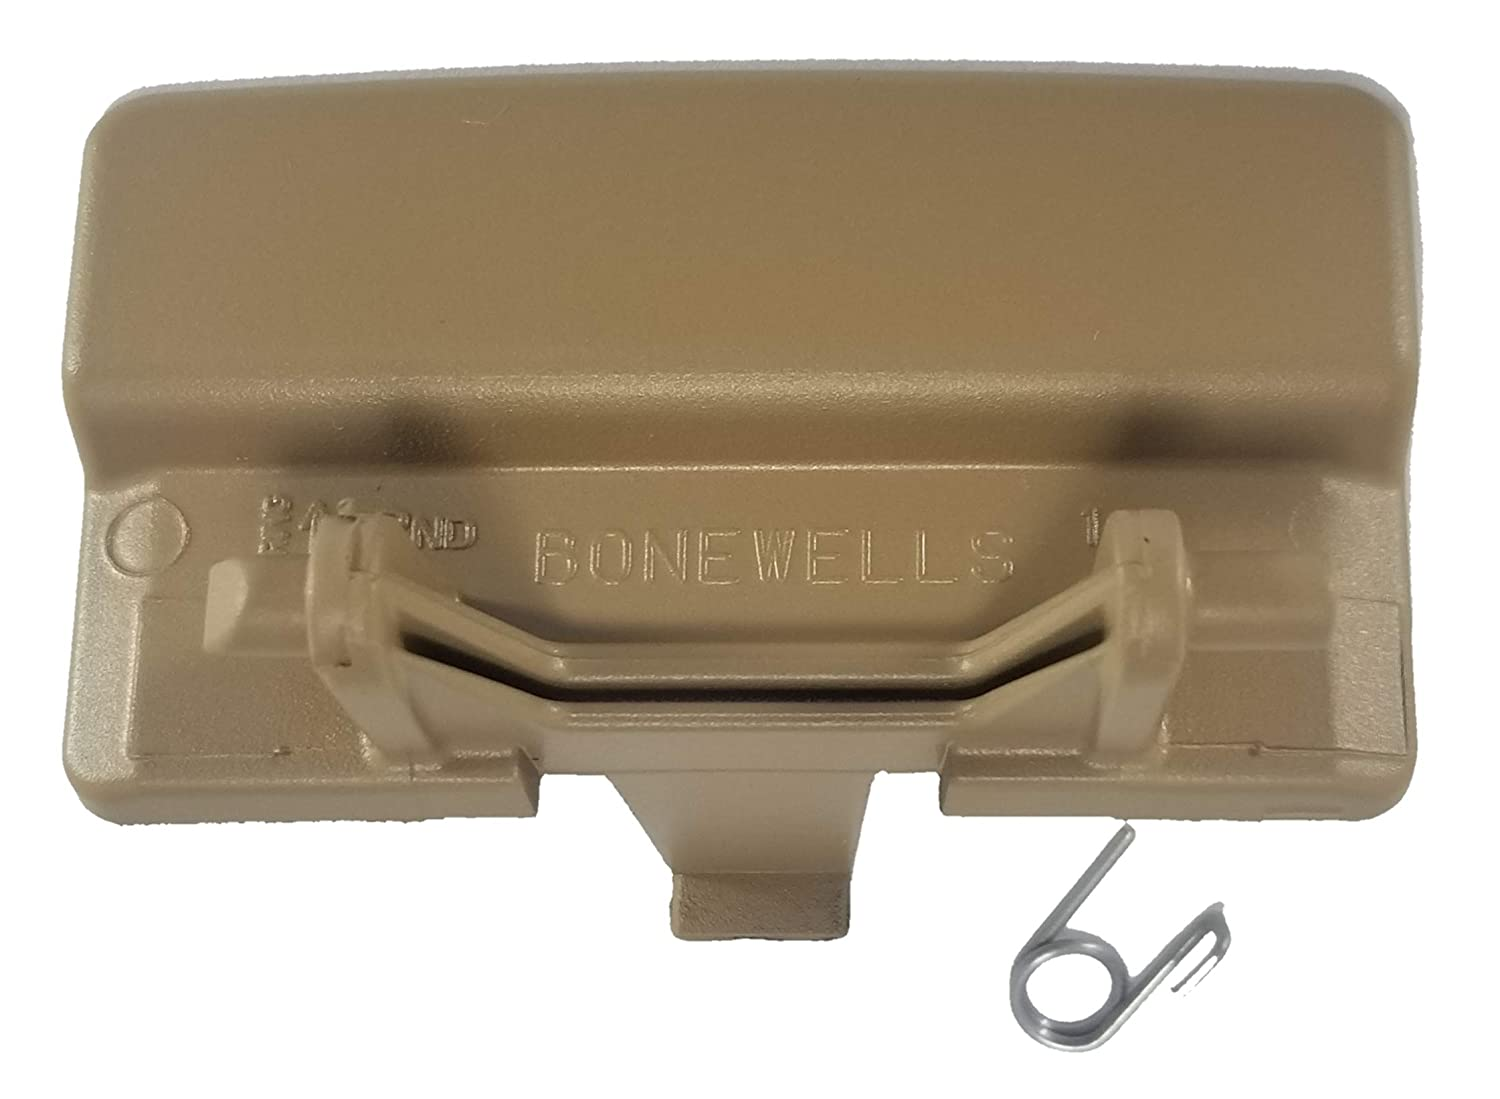 Bonewells Ford F 150 Center Console Latch for Jump Seat, Armrest Latch 2011-2018 (Gray)